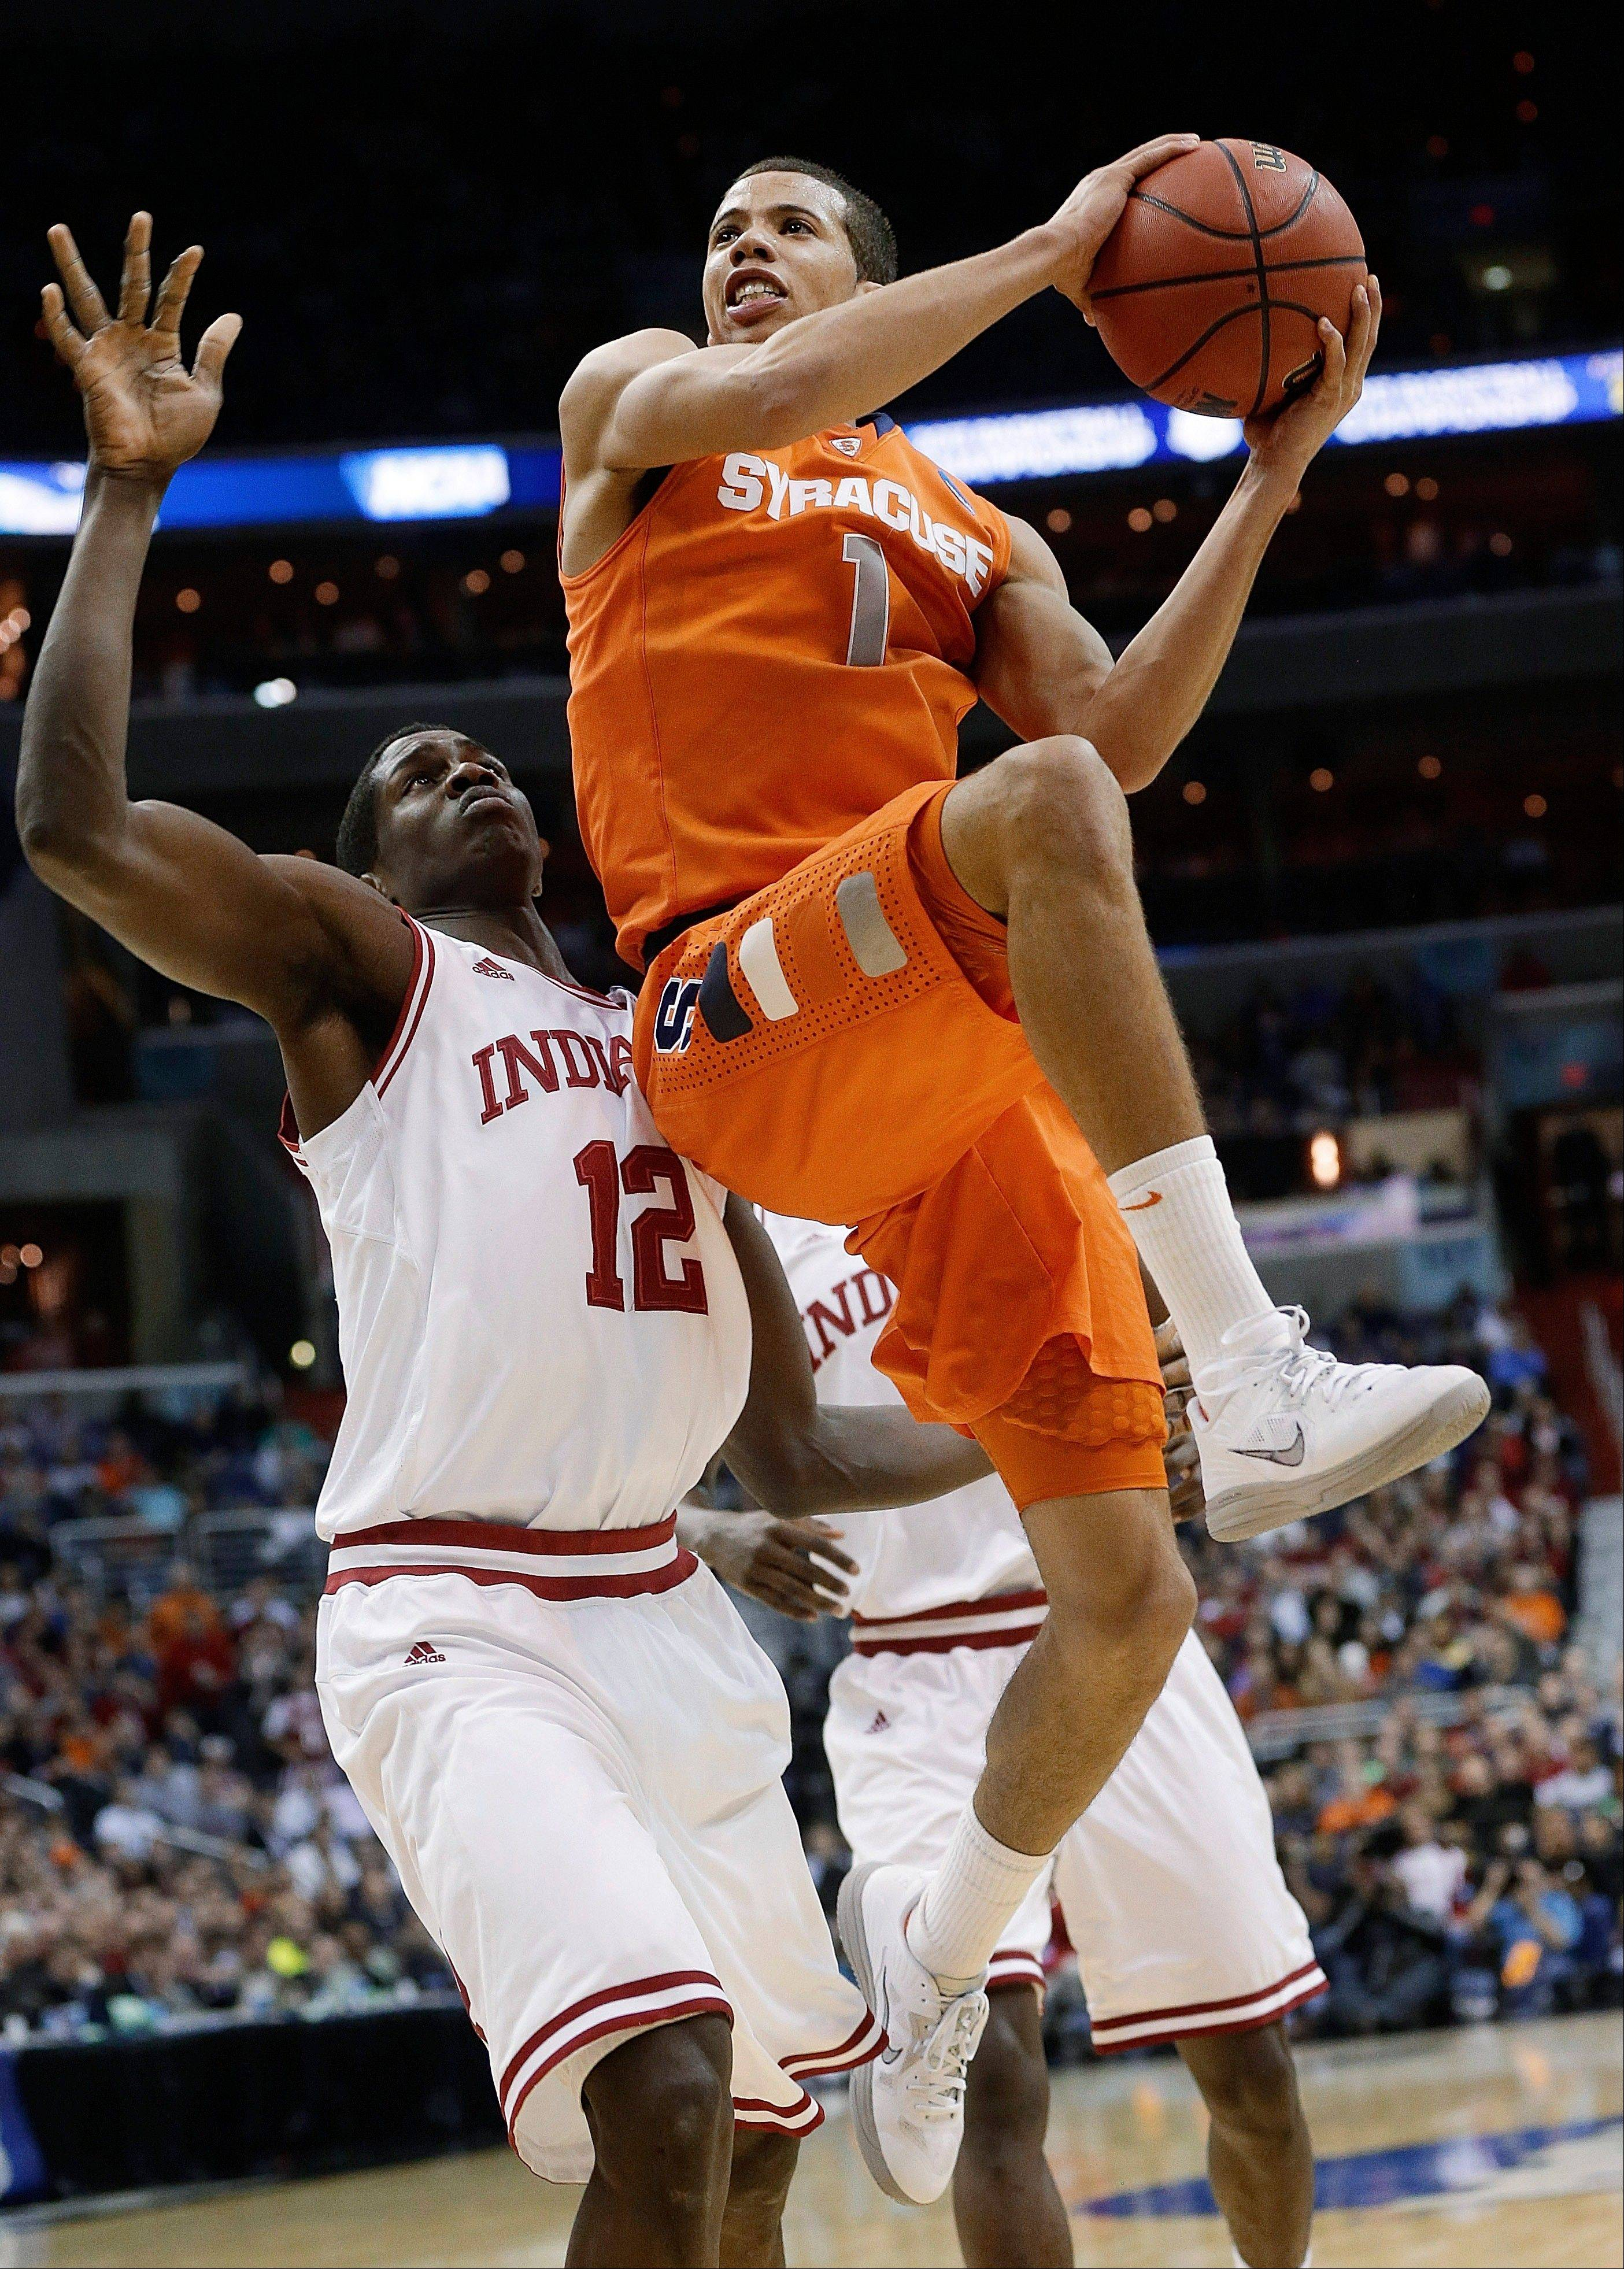 Syracuse guard Michael Carter-Williams (1) goes up past Indiana forward Hanner Mosquera-Perea (12) during the second half of an East Regional semifinal in the NCAA men's college basketball tournament, Thursday, March 28, 2013, in Washington. (AP Photo/Pablo Martinez Monsivais)